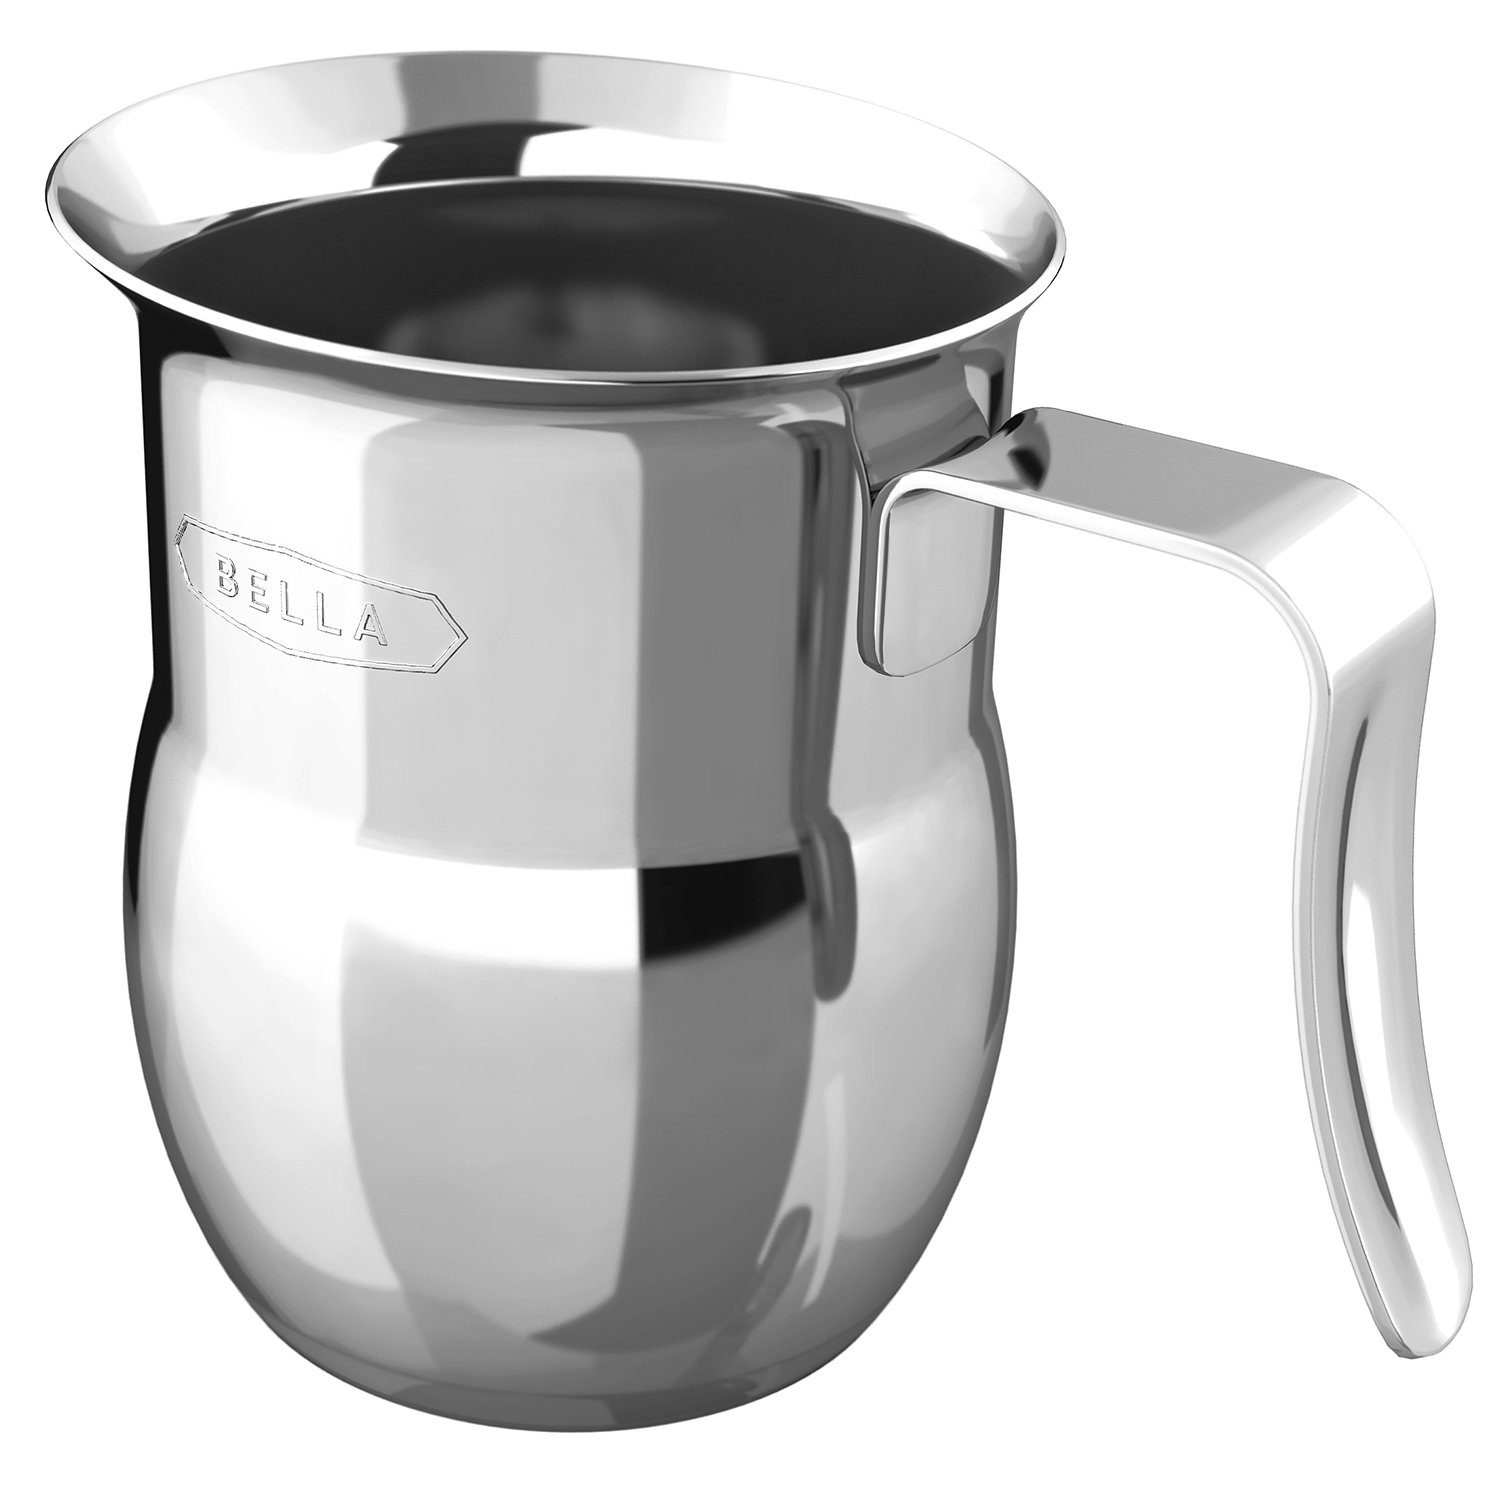 amazoncom bella  frothing pitcher stainless steel  - amazoncom bella  frothing pitcher stainless steel electric milkfrothers kitchen  dining